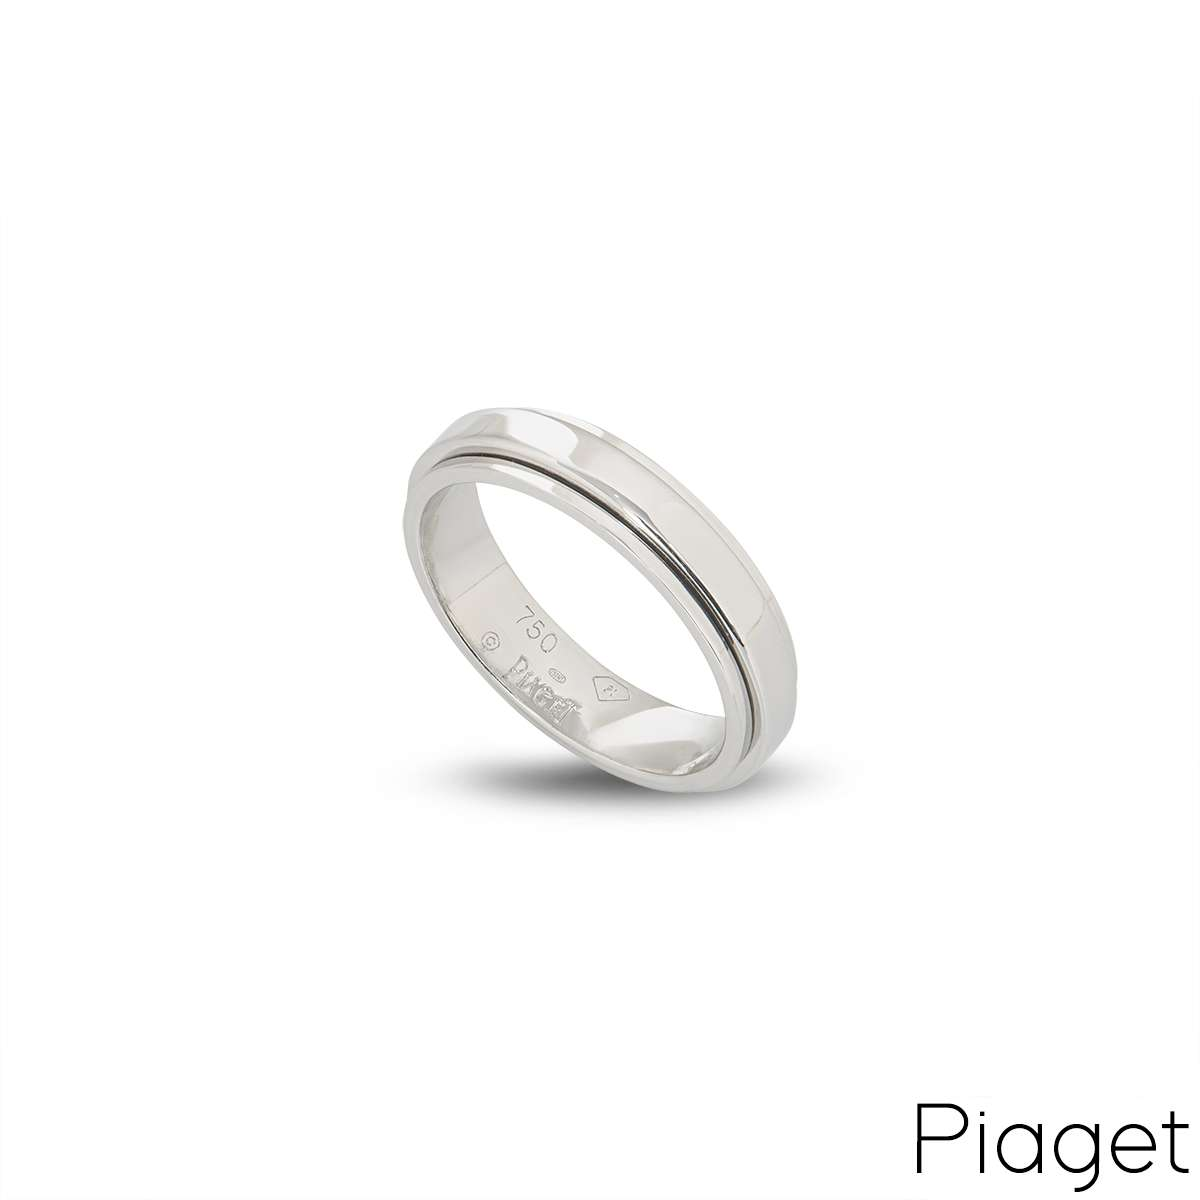 Piaget 18k White Gold Posession Ring B&P G34PK757